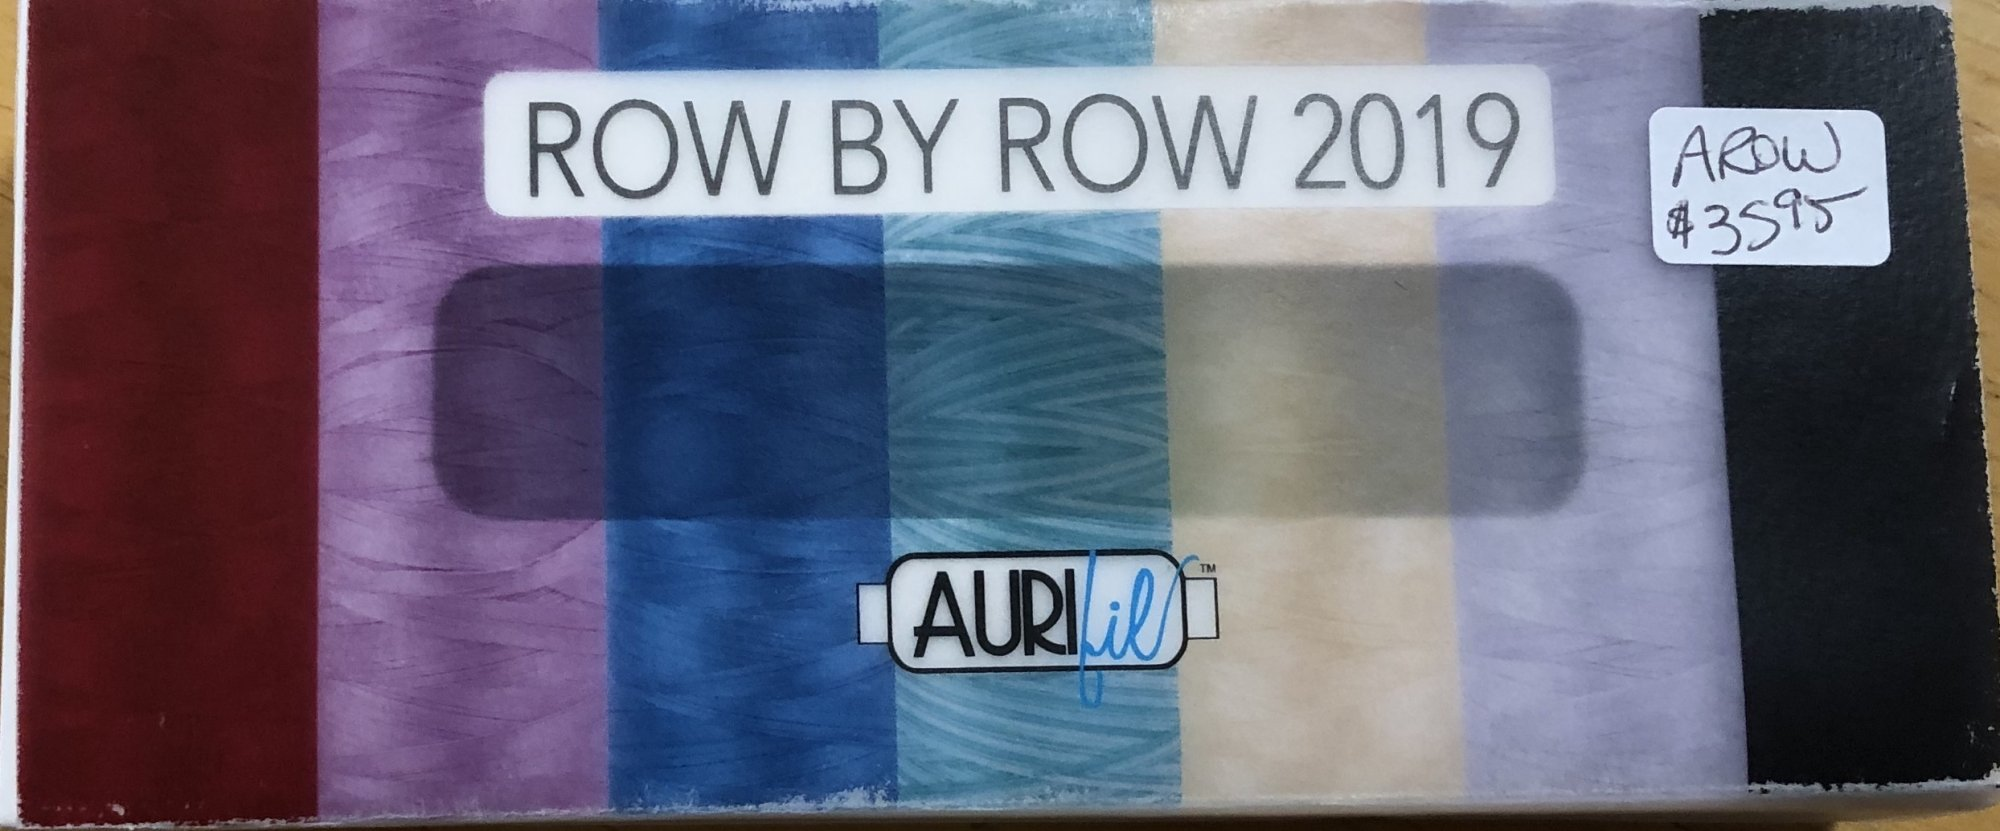 ROW BY ROW 2019 BY AURIFIL 7 SMALL SPOOLS 50 WT 2692 2600 2110 4654 1320 2515 2250